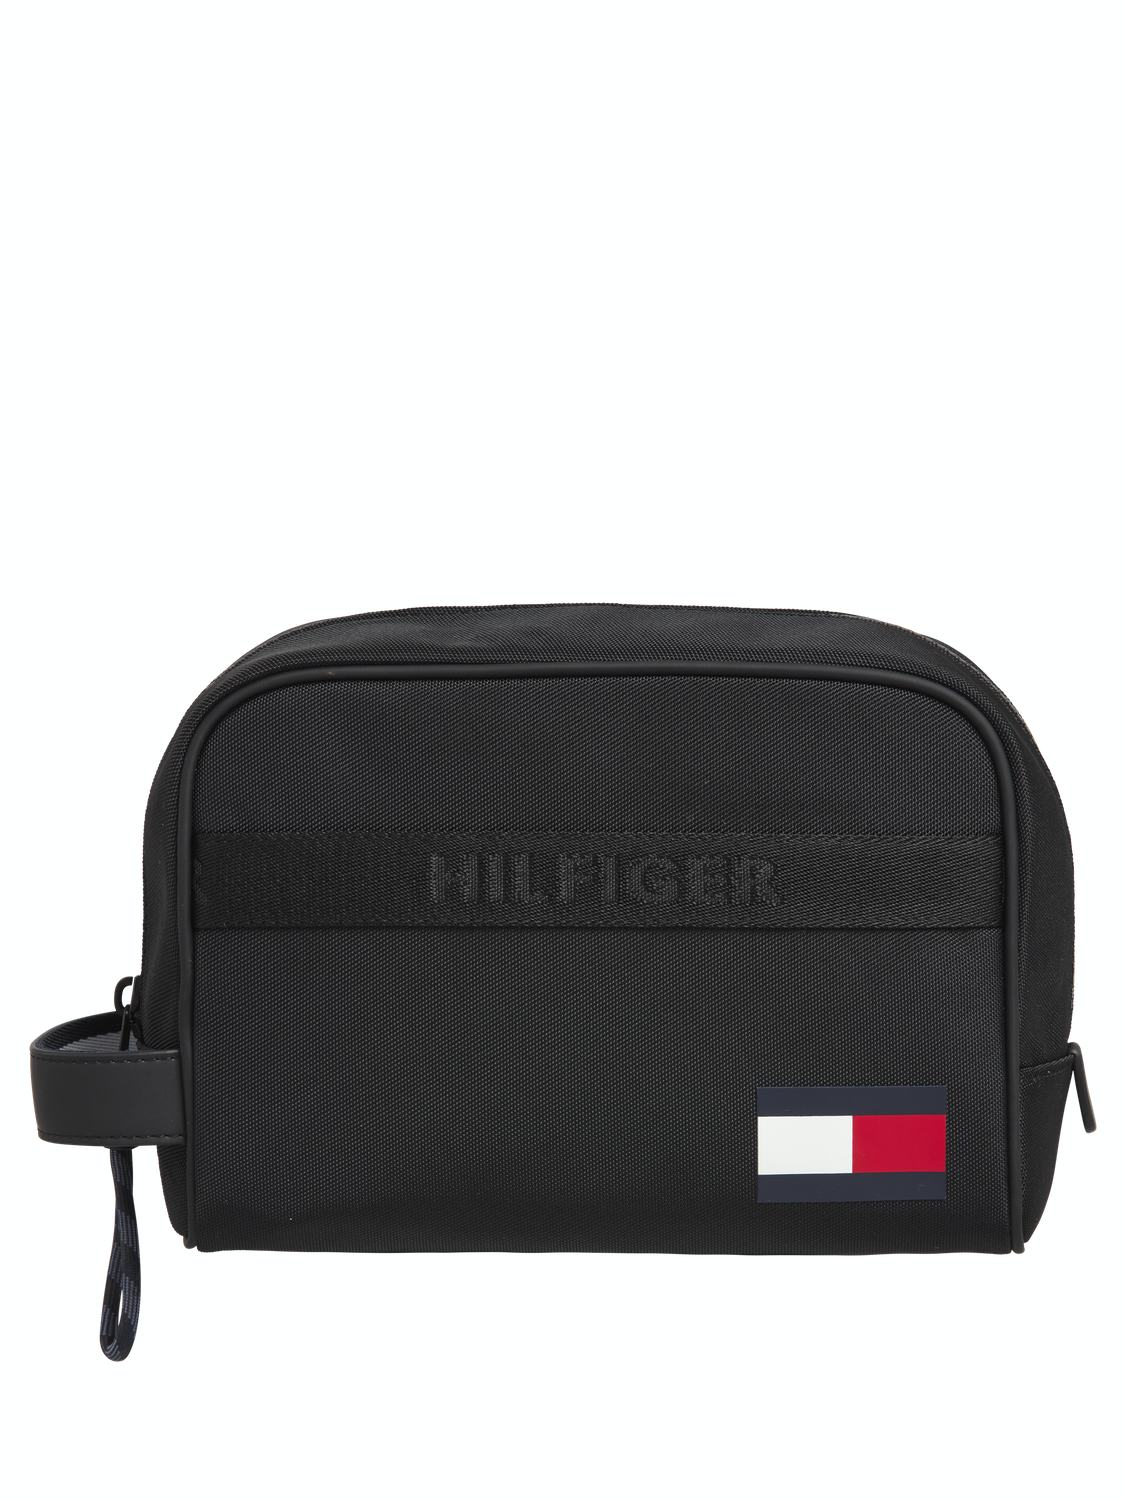 Tommy Hilfiger washbag black